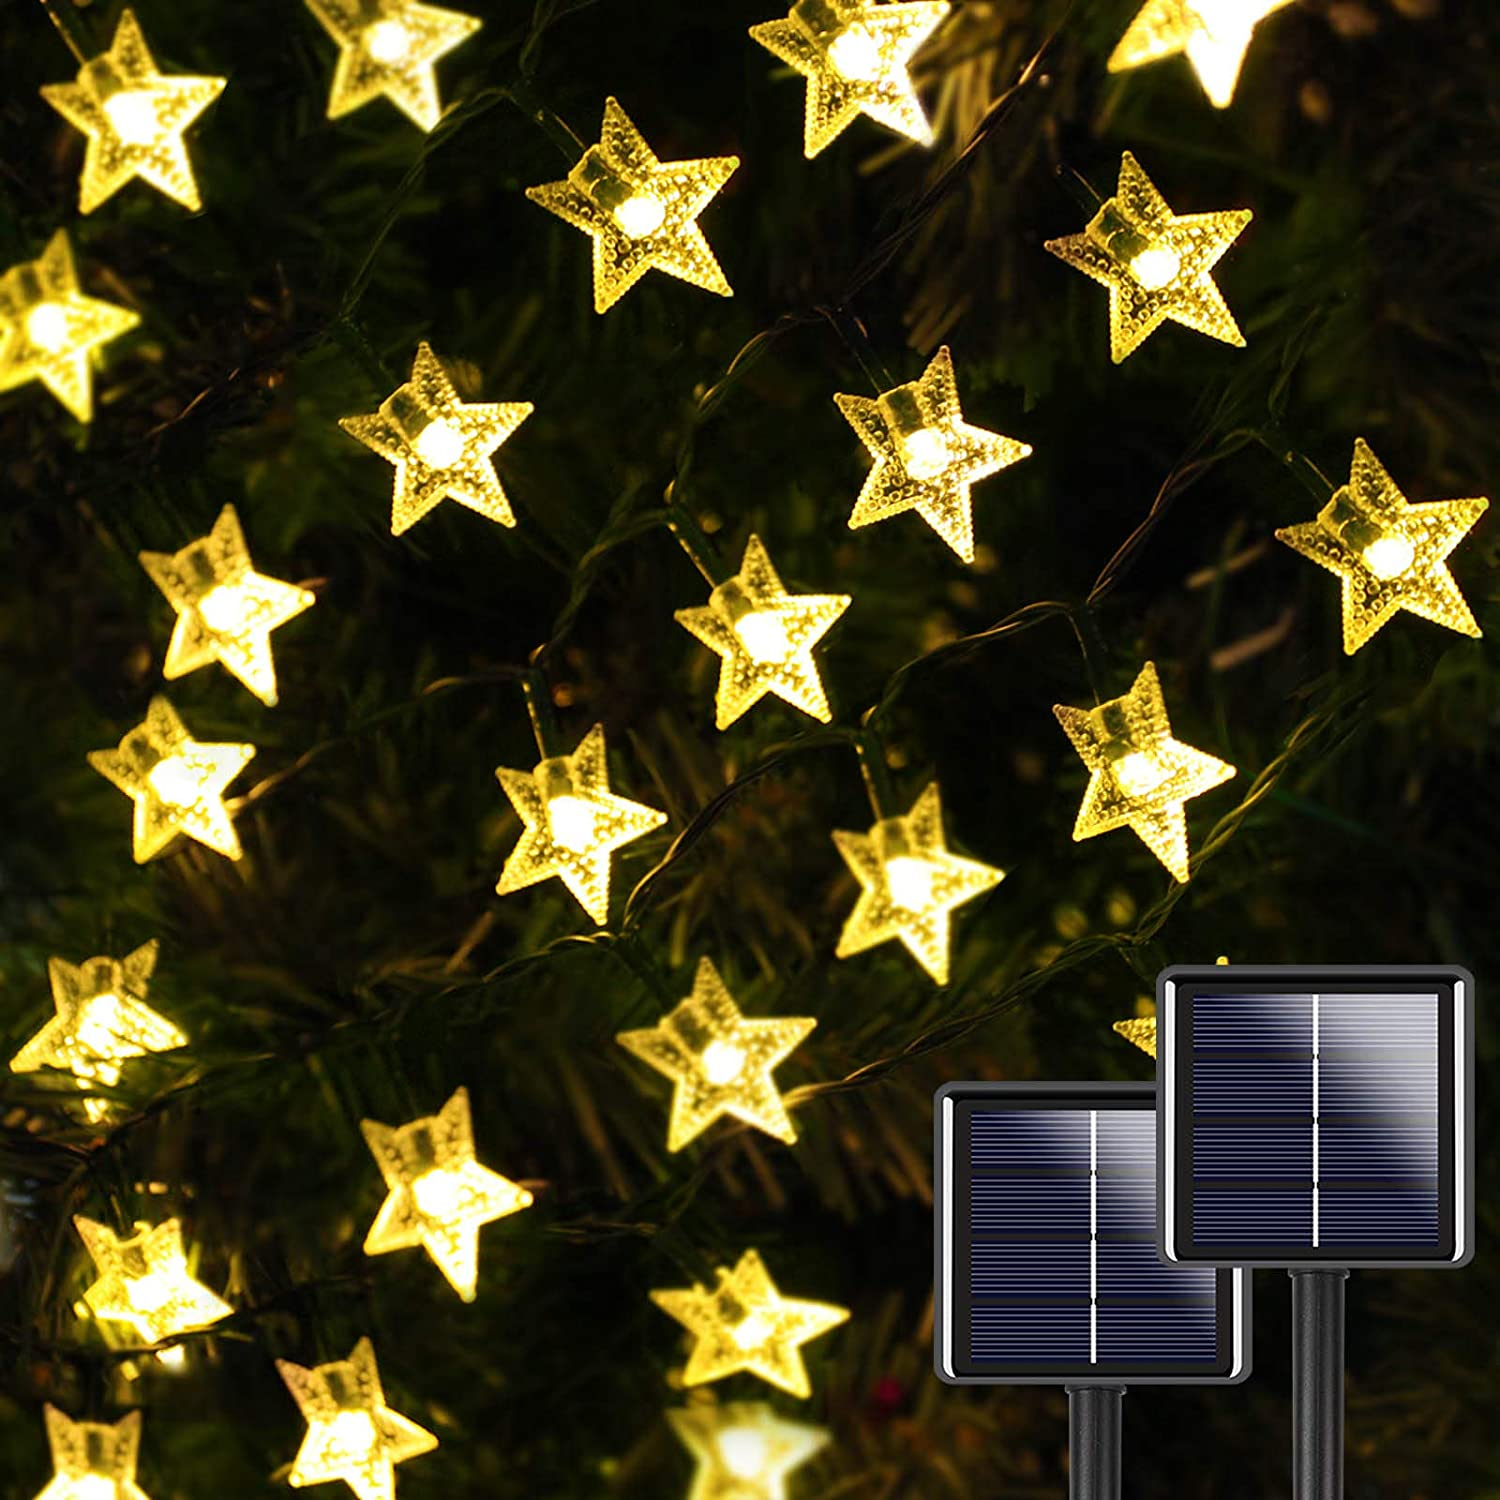 2-Pack 200 LED 40FT Star Solar String Lights Outdoor, Star Solar Lights Outdoor Decorative with 8 Lighting Modes, Solar Powered Patio Lights for Garden Yard Wedding Party (Warm White)